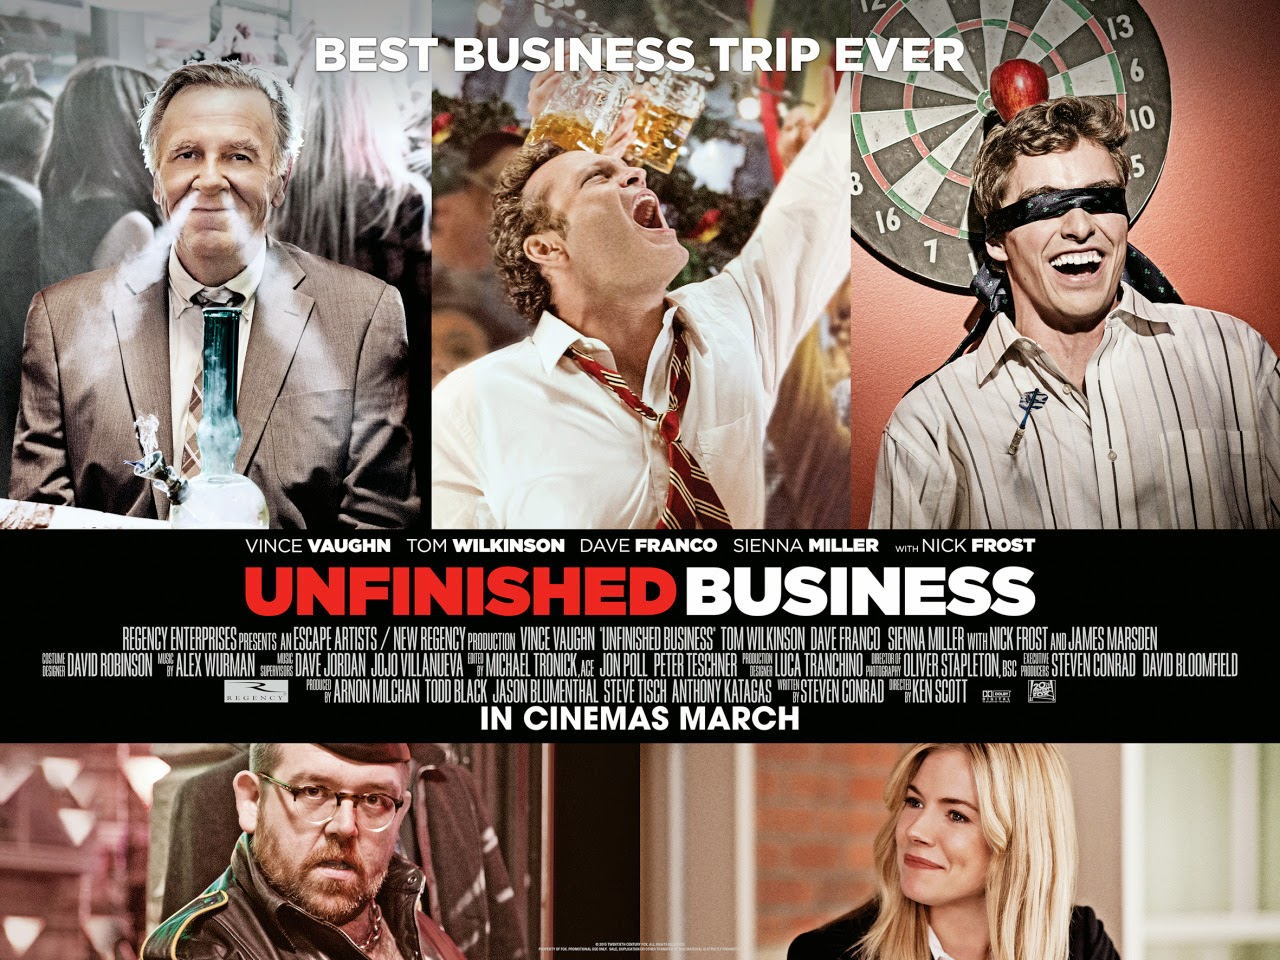 Unfinished Business quad poster. ™ and © 2015 Twentieth Century Fox Film Corporation. All rights reserved.